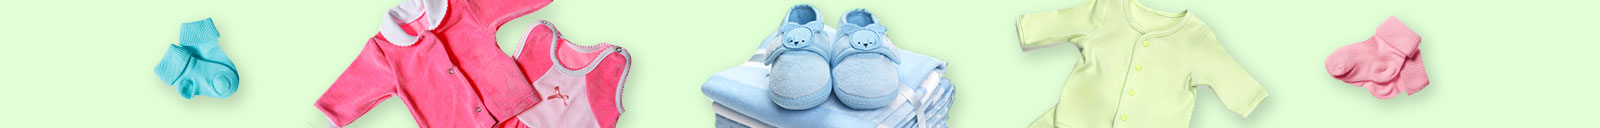 Baby Apparel Department Banner